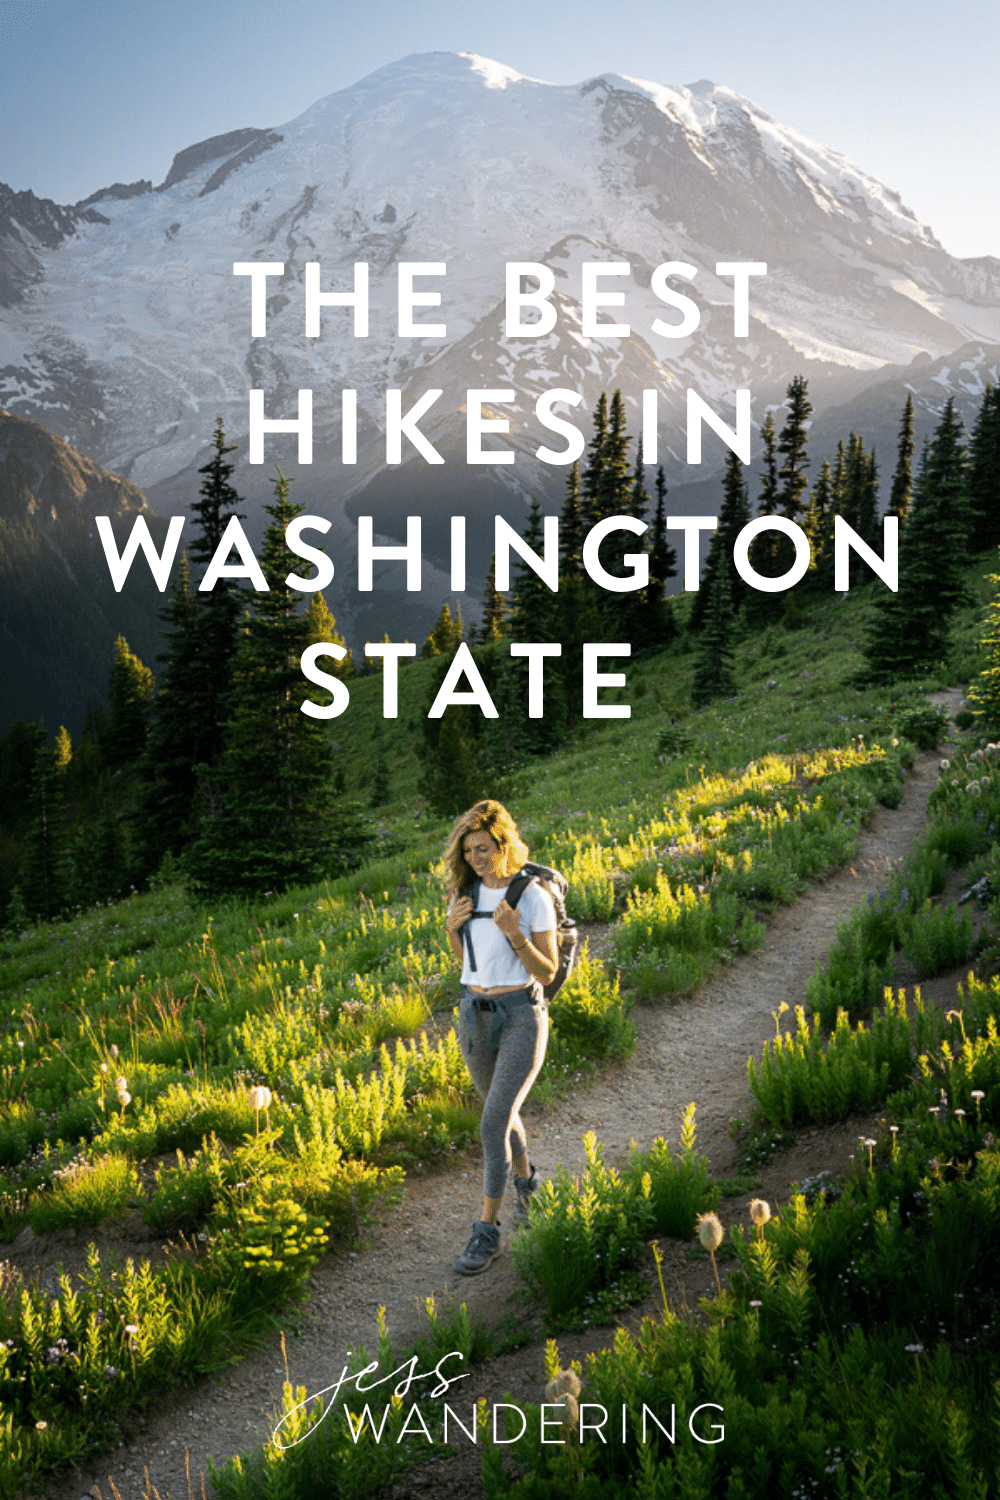 The best hikes in Washington State.